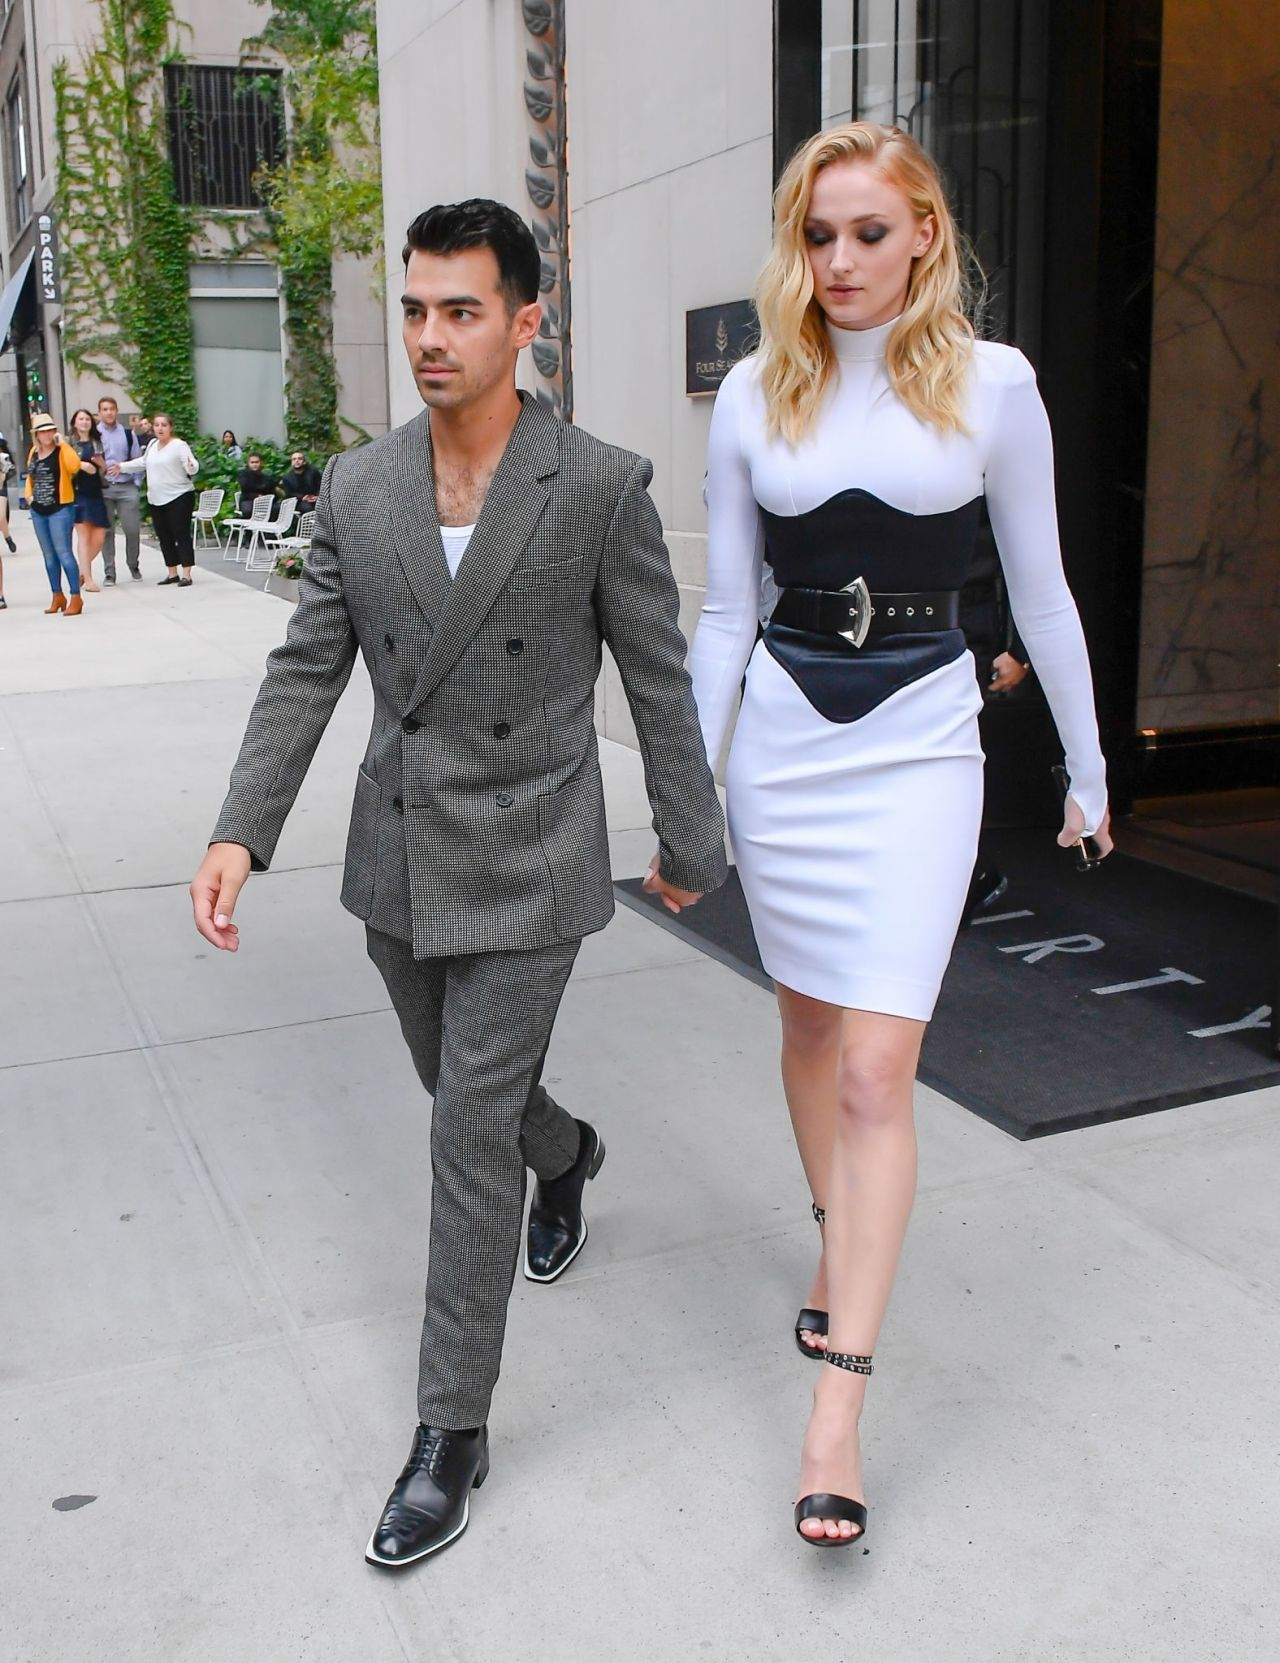 sophie-turner-&-joe-jonas-–-in-soho-on-their-way-to-the-vmas